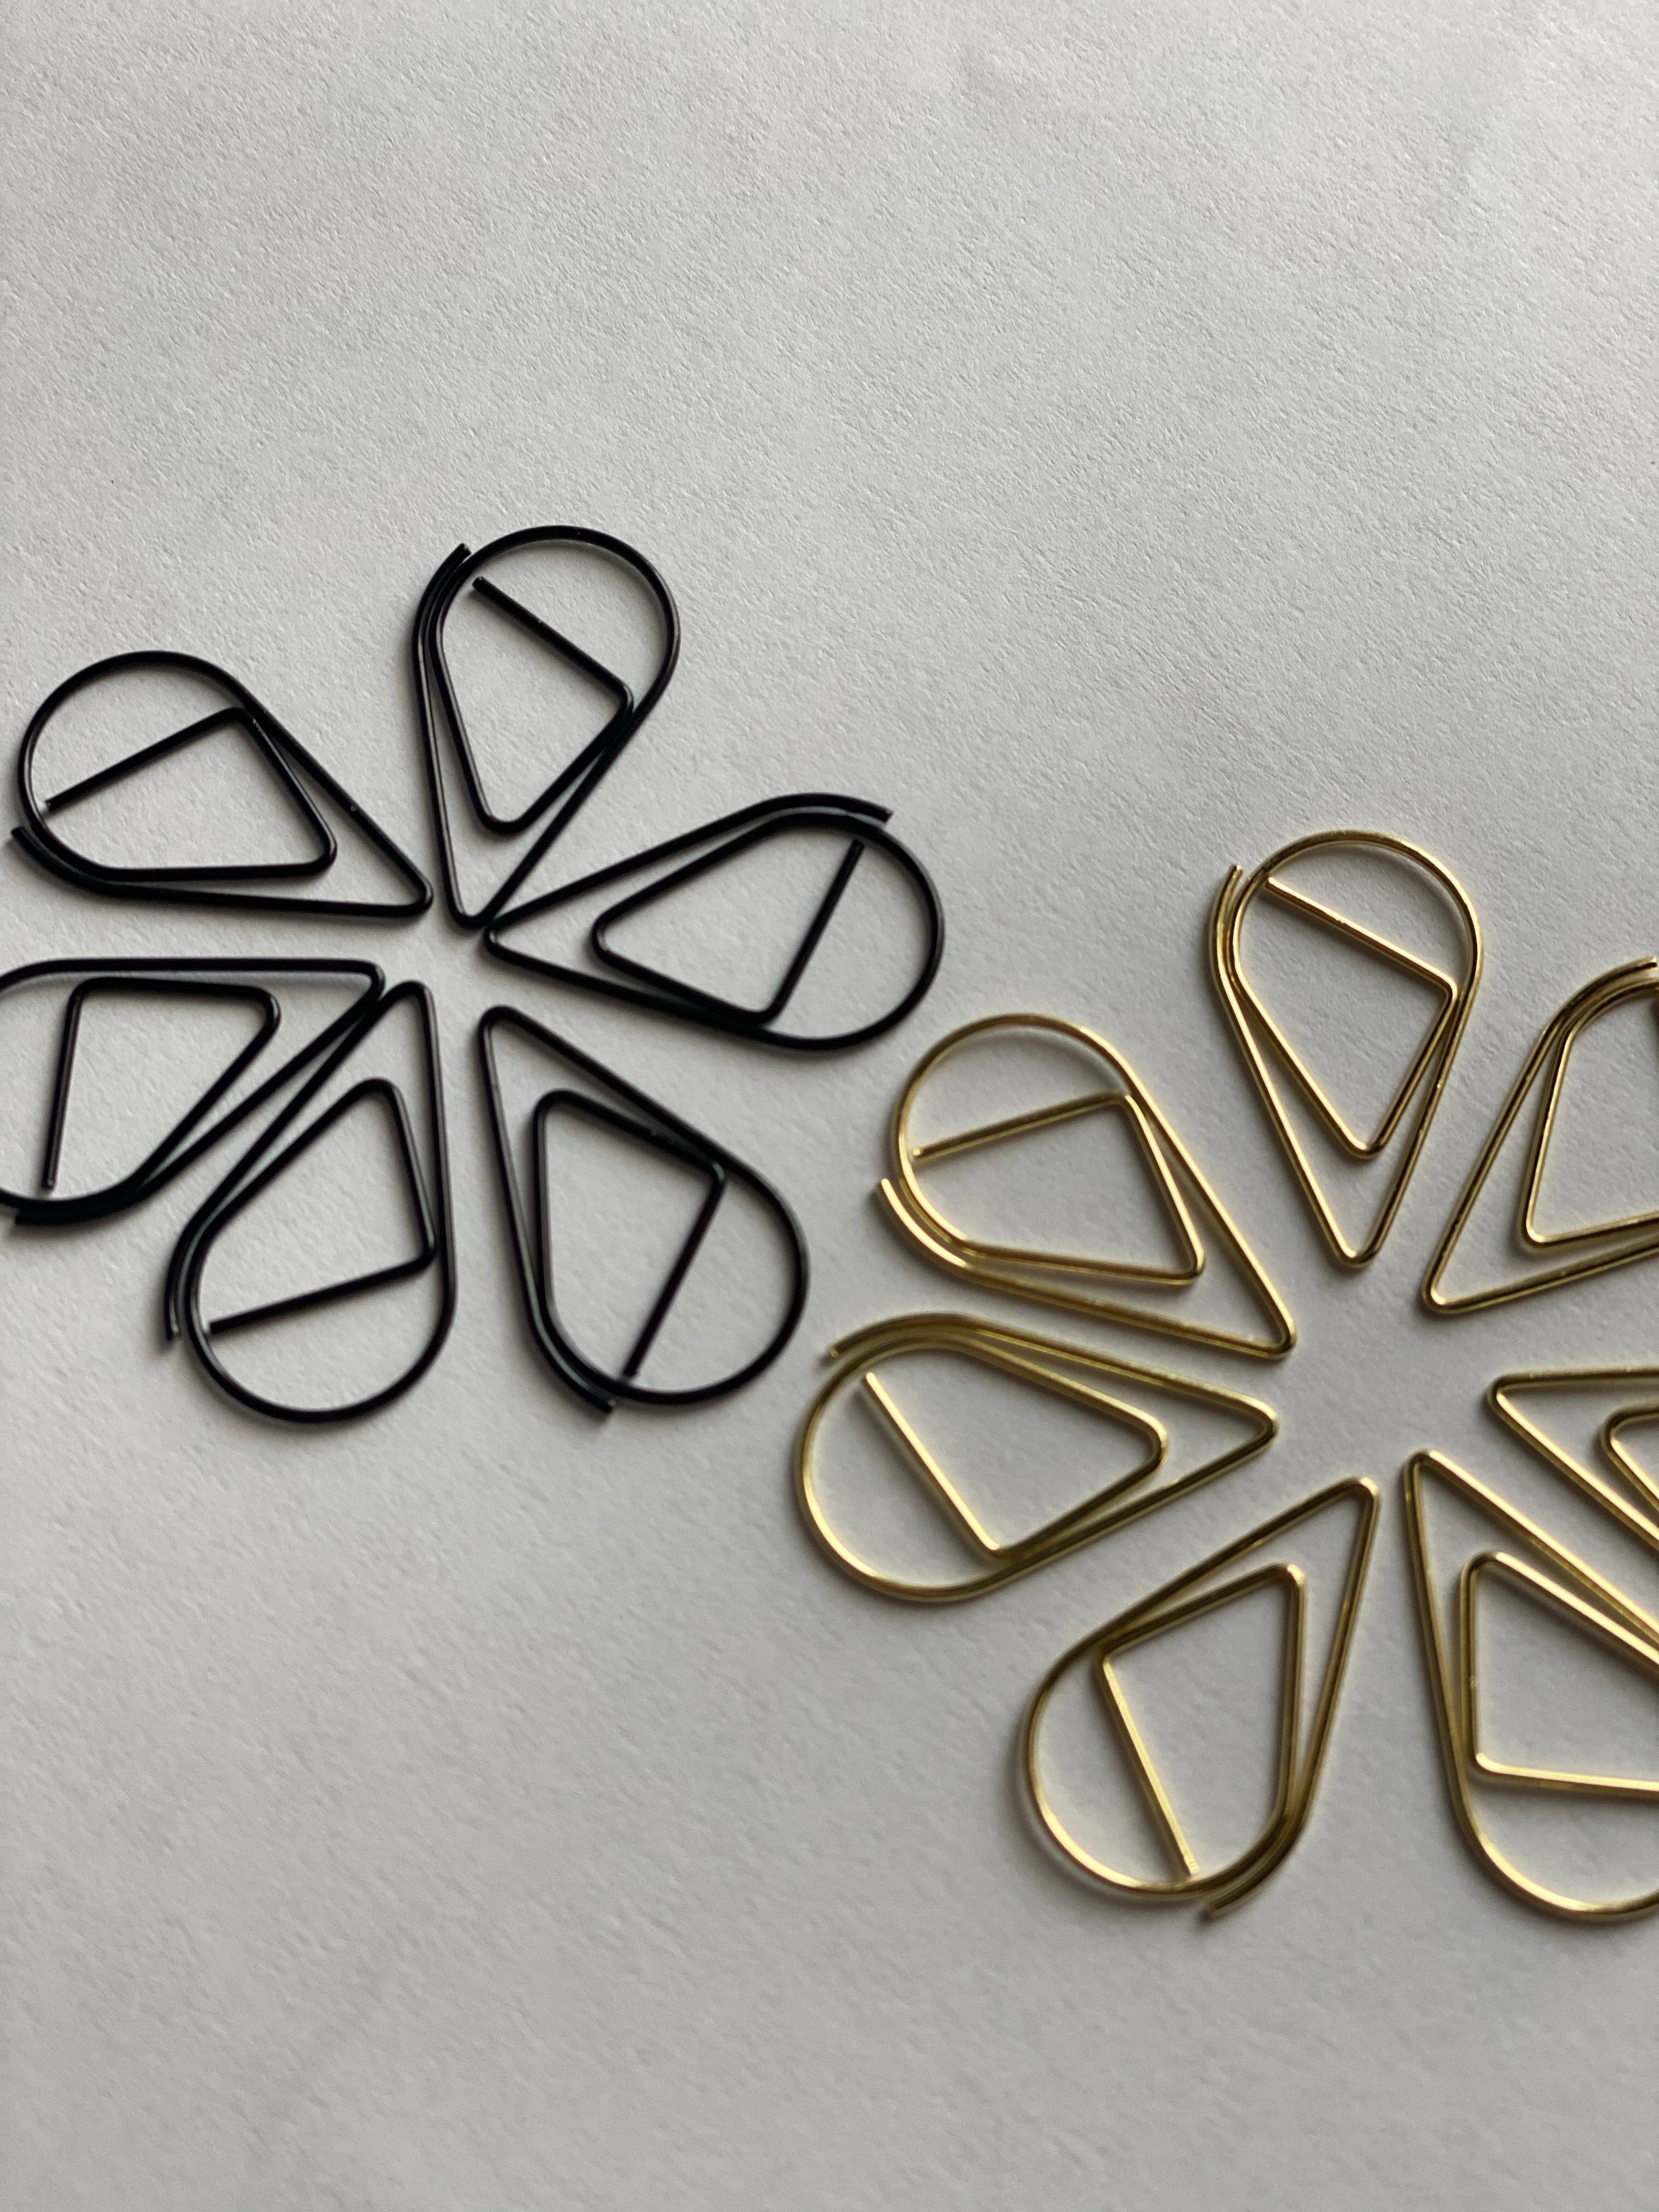 Tear Drop Paper Clips